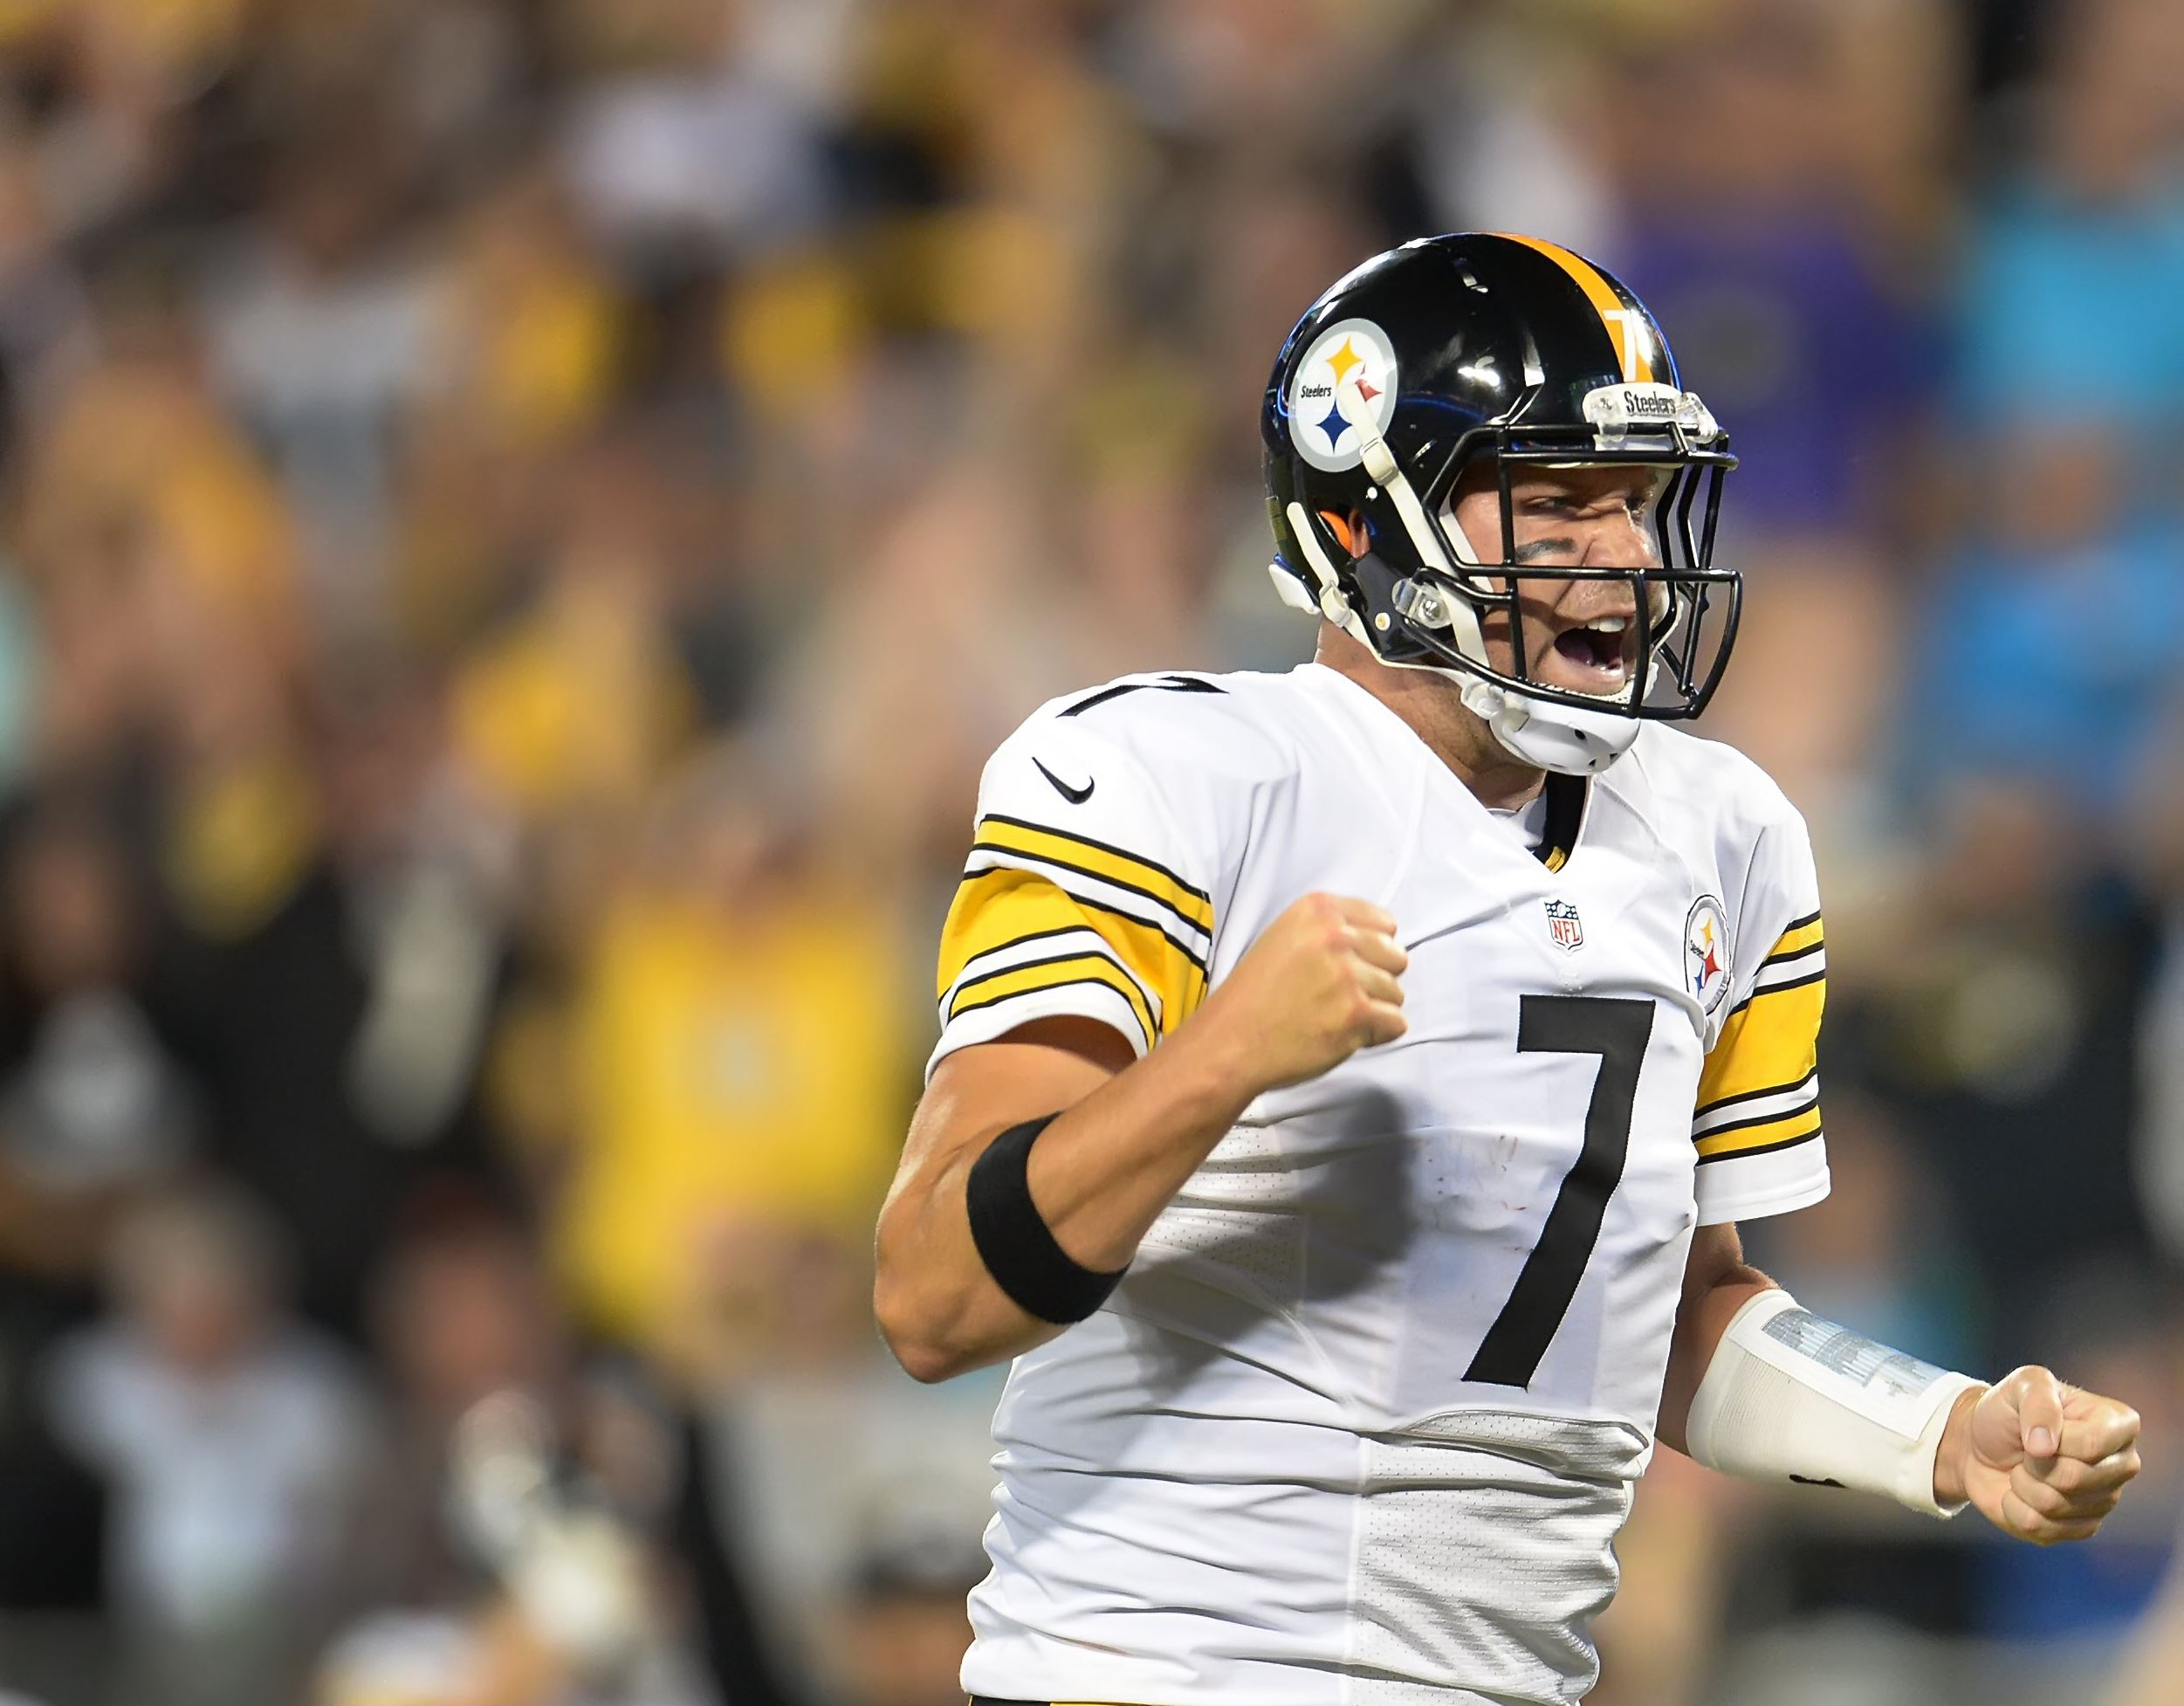 steelers dating site Pittsburgh steelers: men of steel chronicles 60 years of steelers history dating he s also the publisher of fox/scout network s steelers site after.